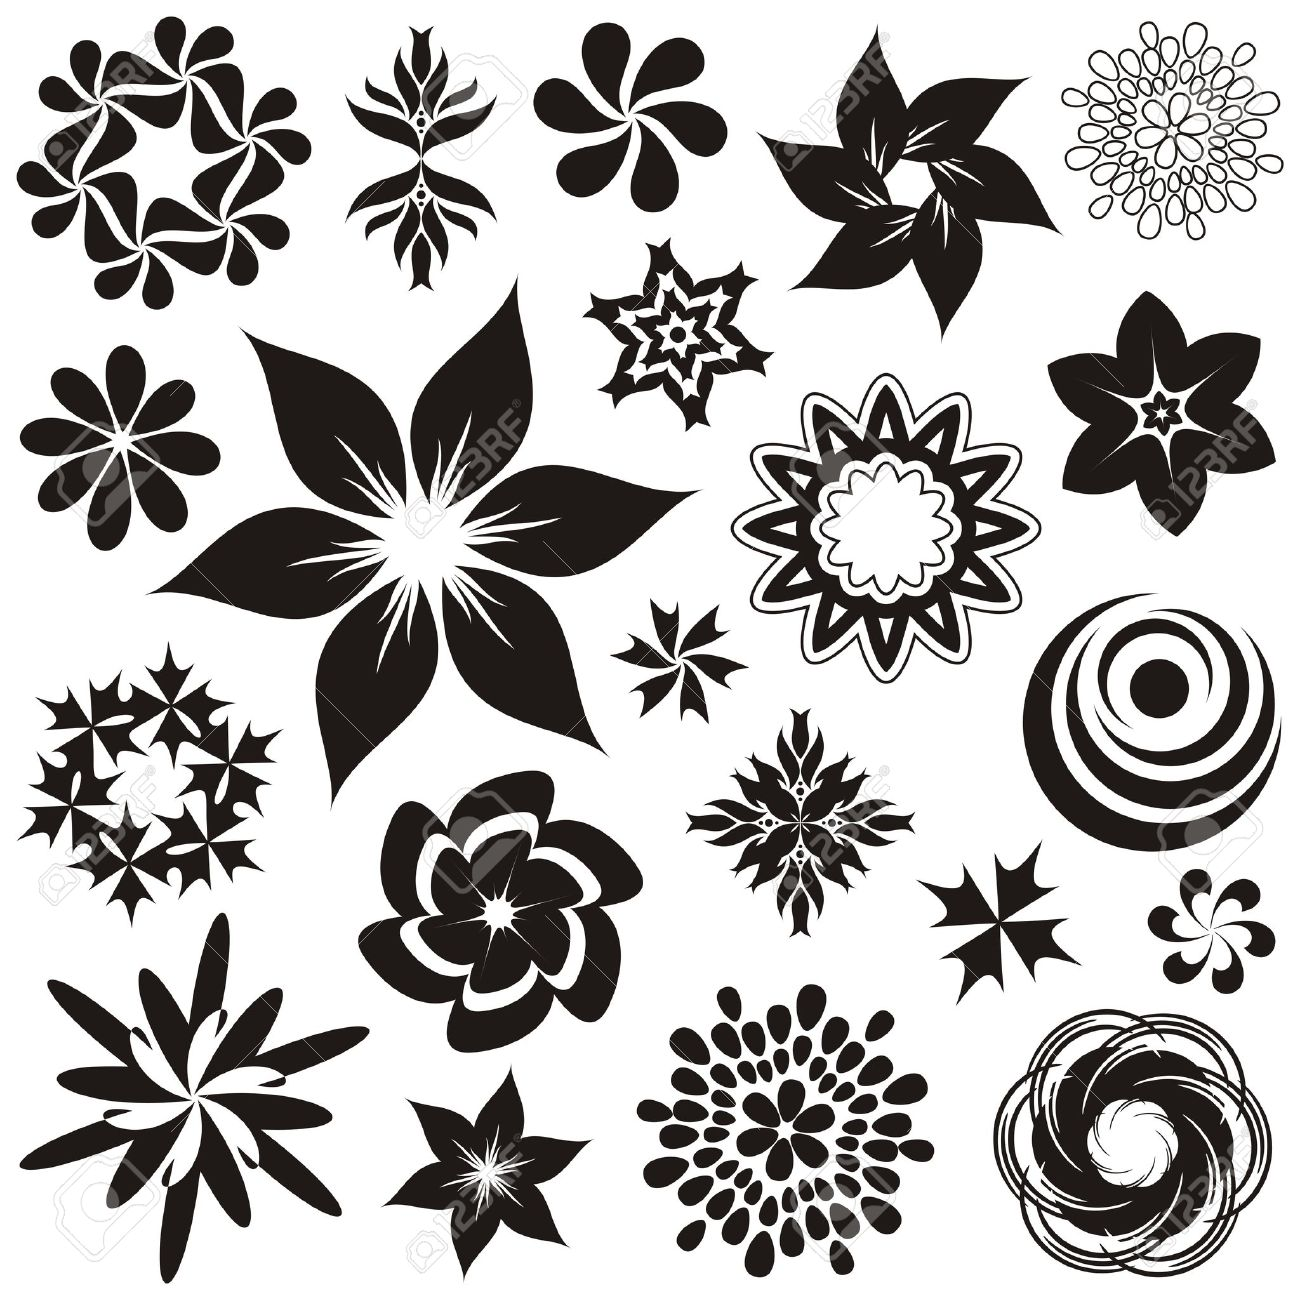 Set of black and white flower symbols and ornaments, second set Stock Vector - 22560710